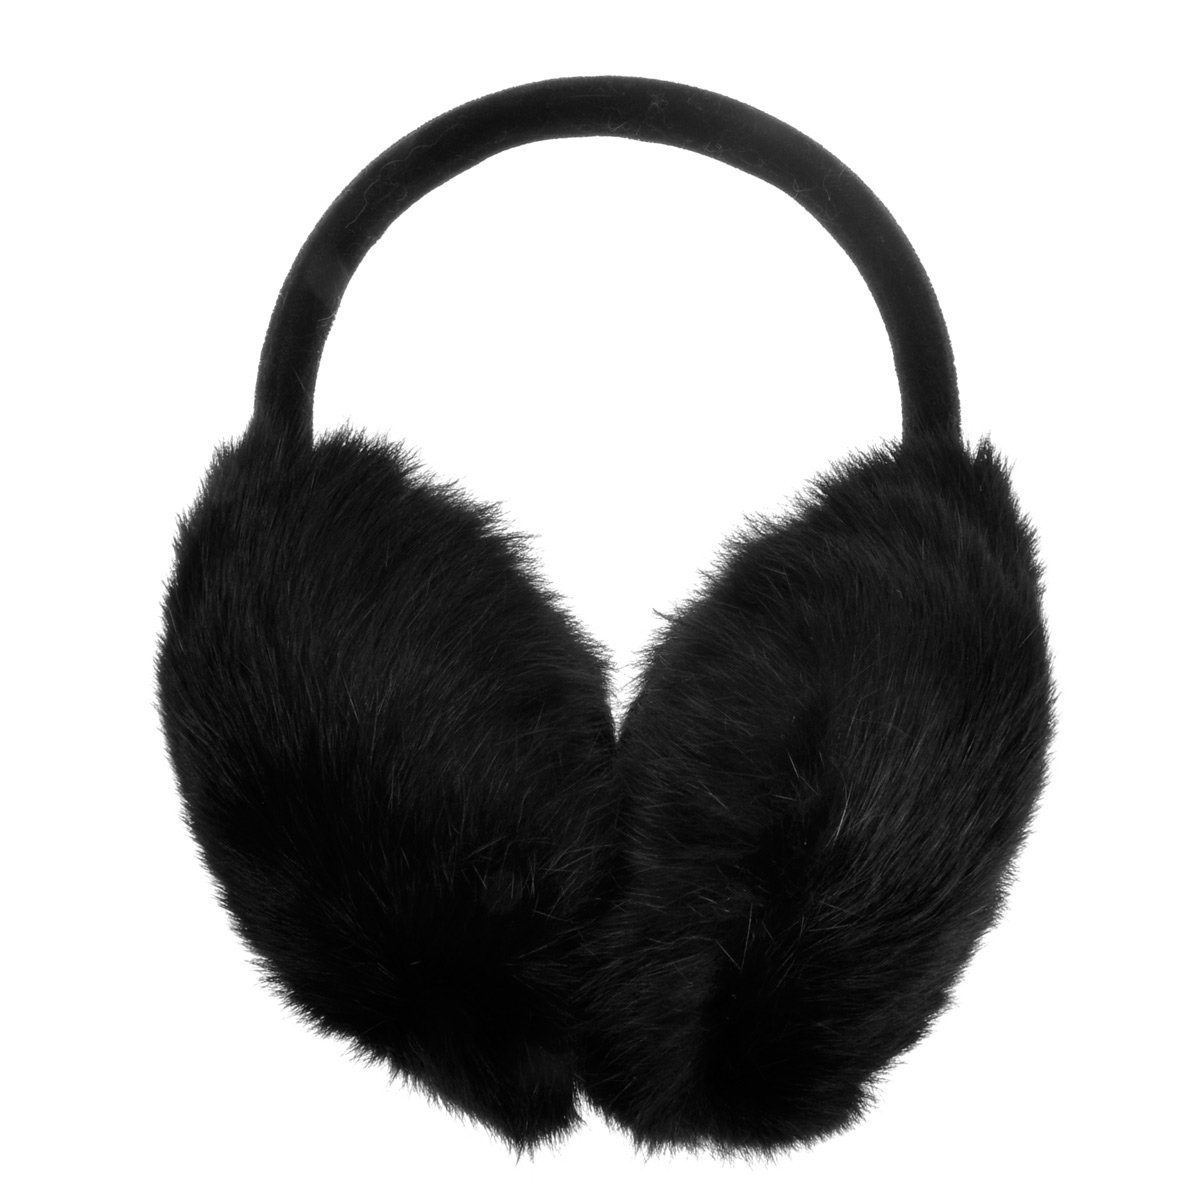 ZLYC Womens Girls Genuine Rabbit Fur EarMuffs Adjustable Ear Warmers, Black by ZLYC